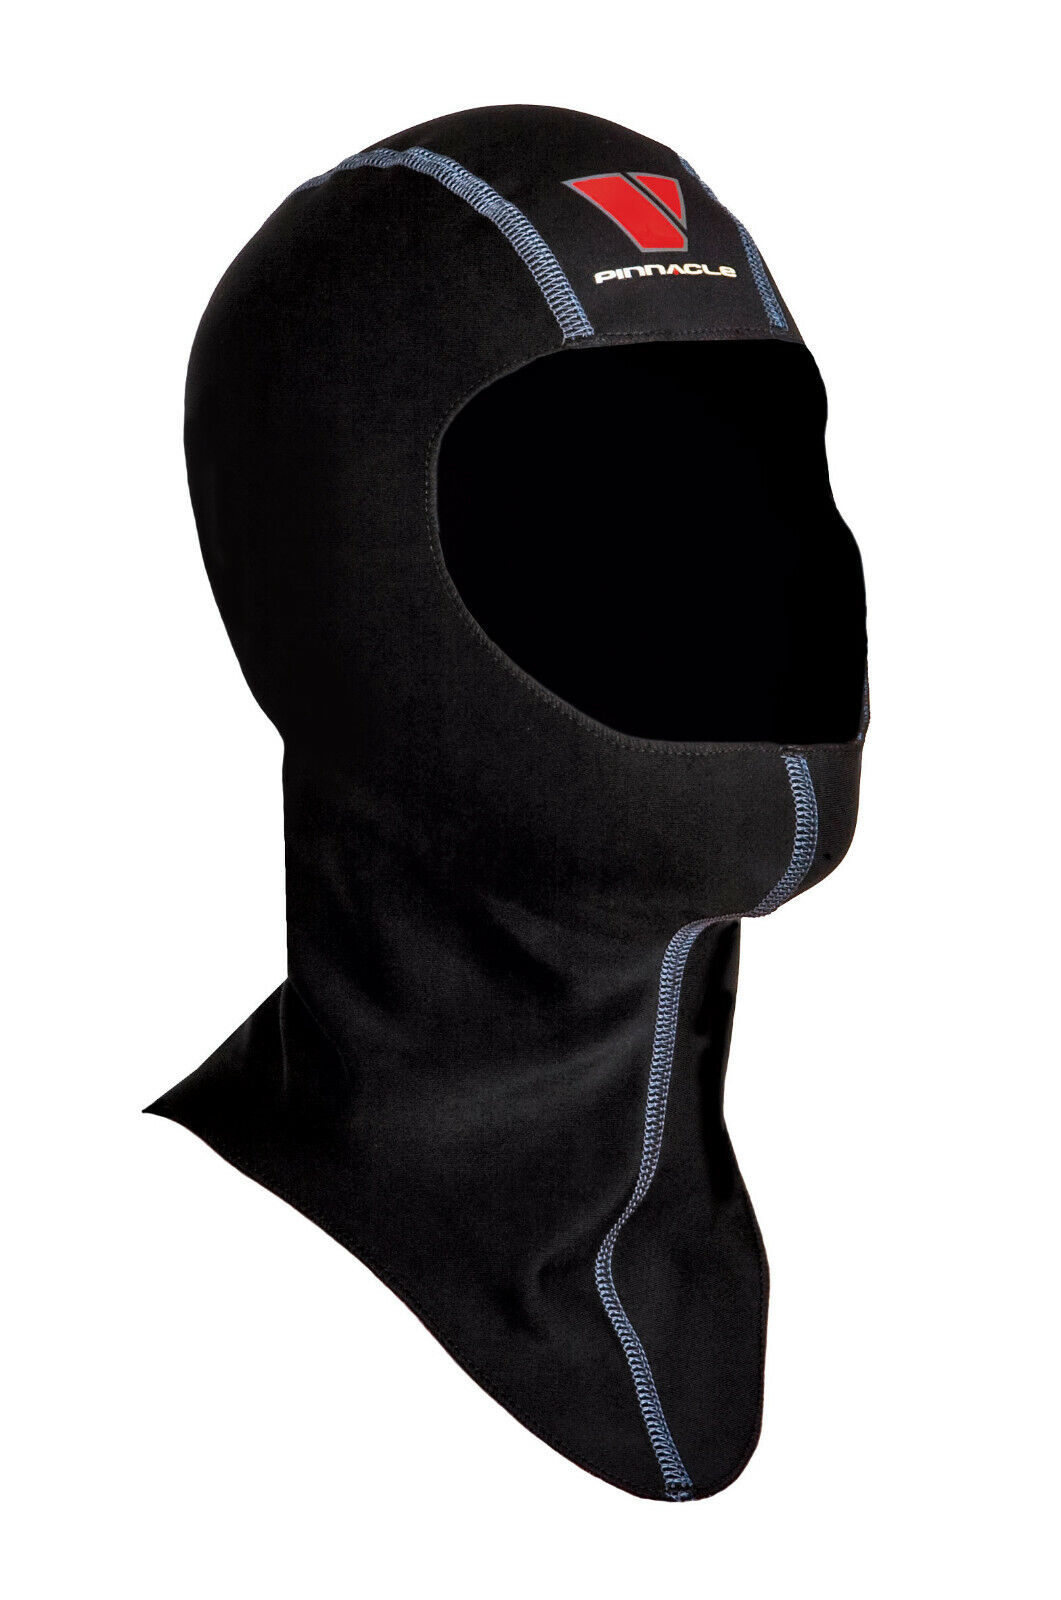 Pinnacle V-Skin Hood Scuba Diving Surf Wetsuit Watersports ALL Sizes